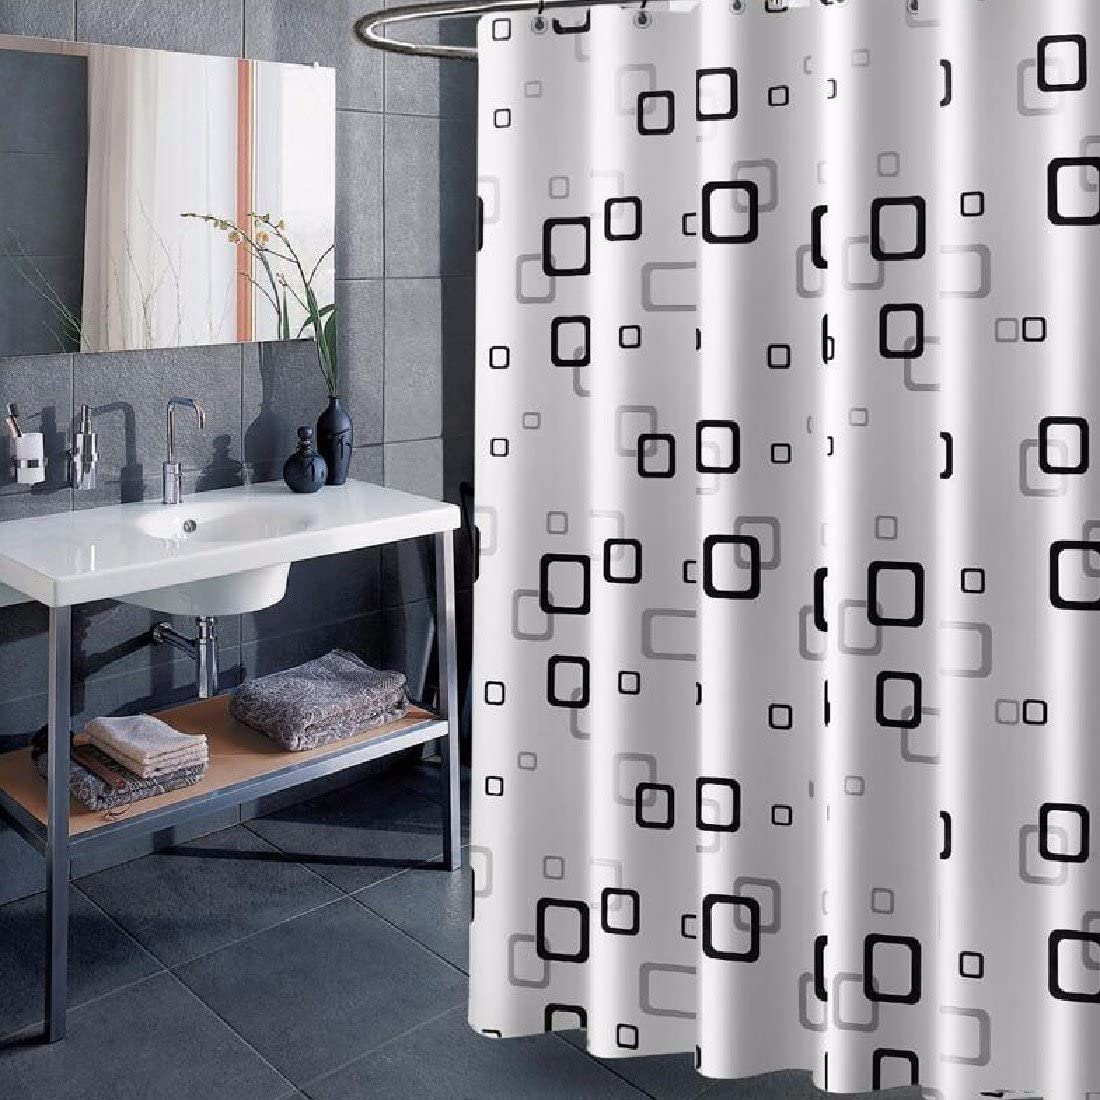 Amazon Com Shower Curtain Thickening Shower Curtain Mould Proof Waterproof Non Perforated Shower Cord Bathroom Partition Curtain 2x2m Home Kitchen